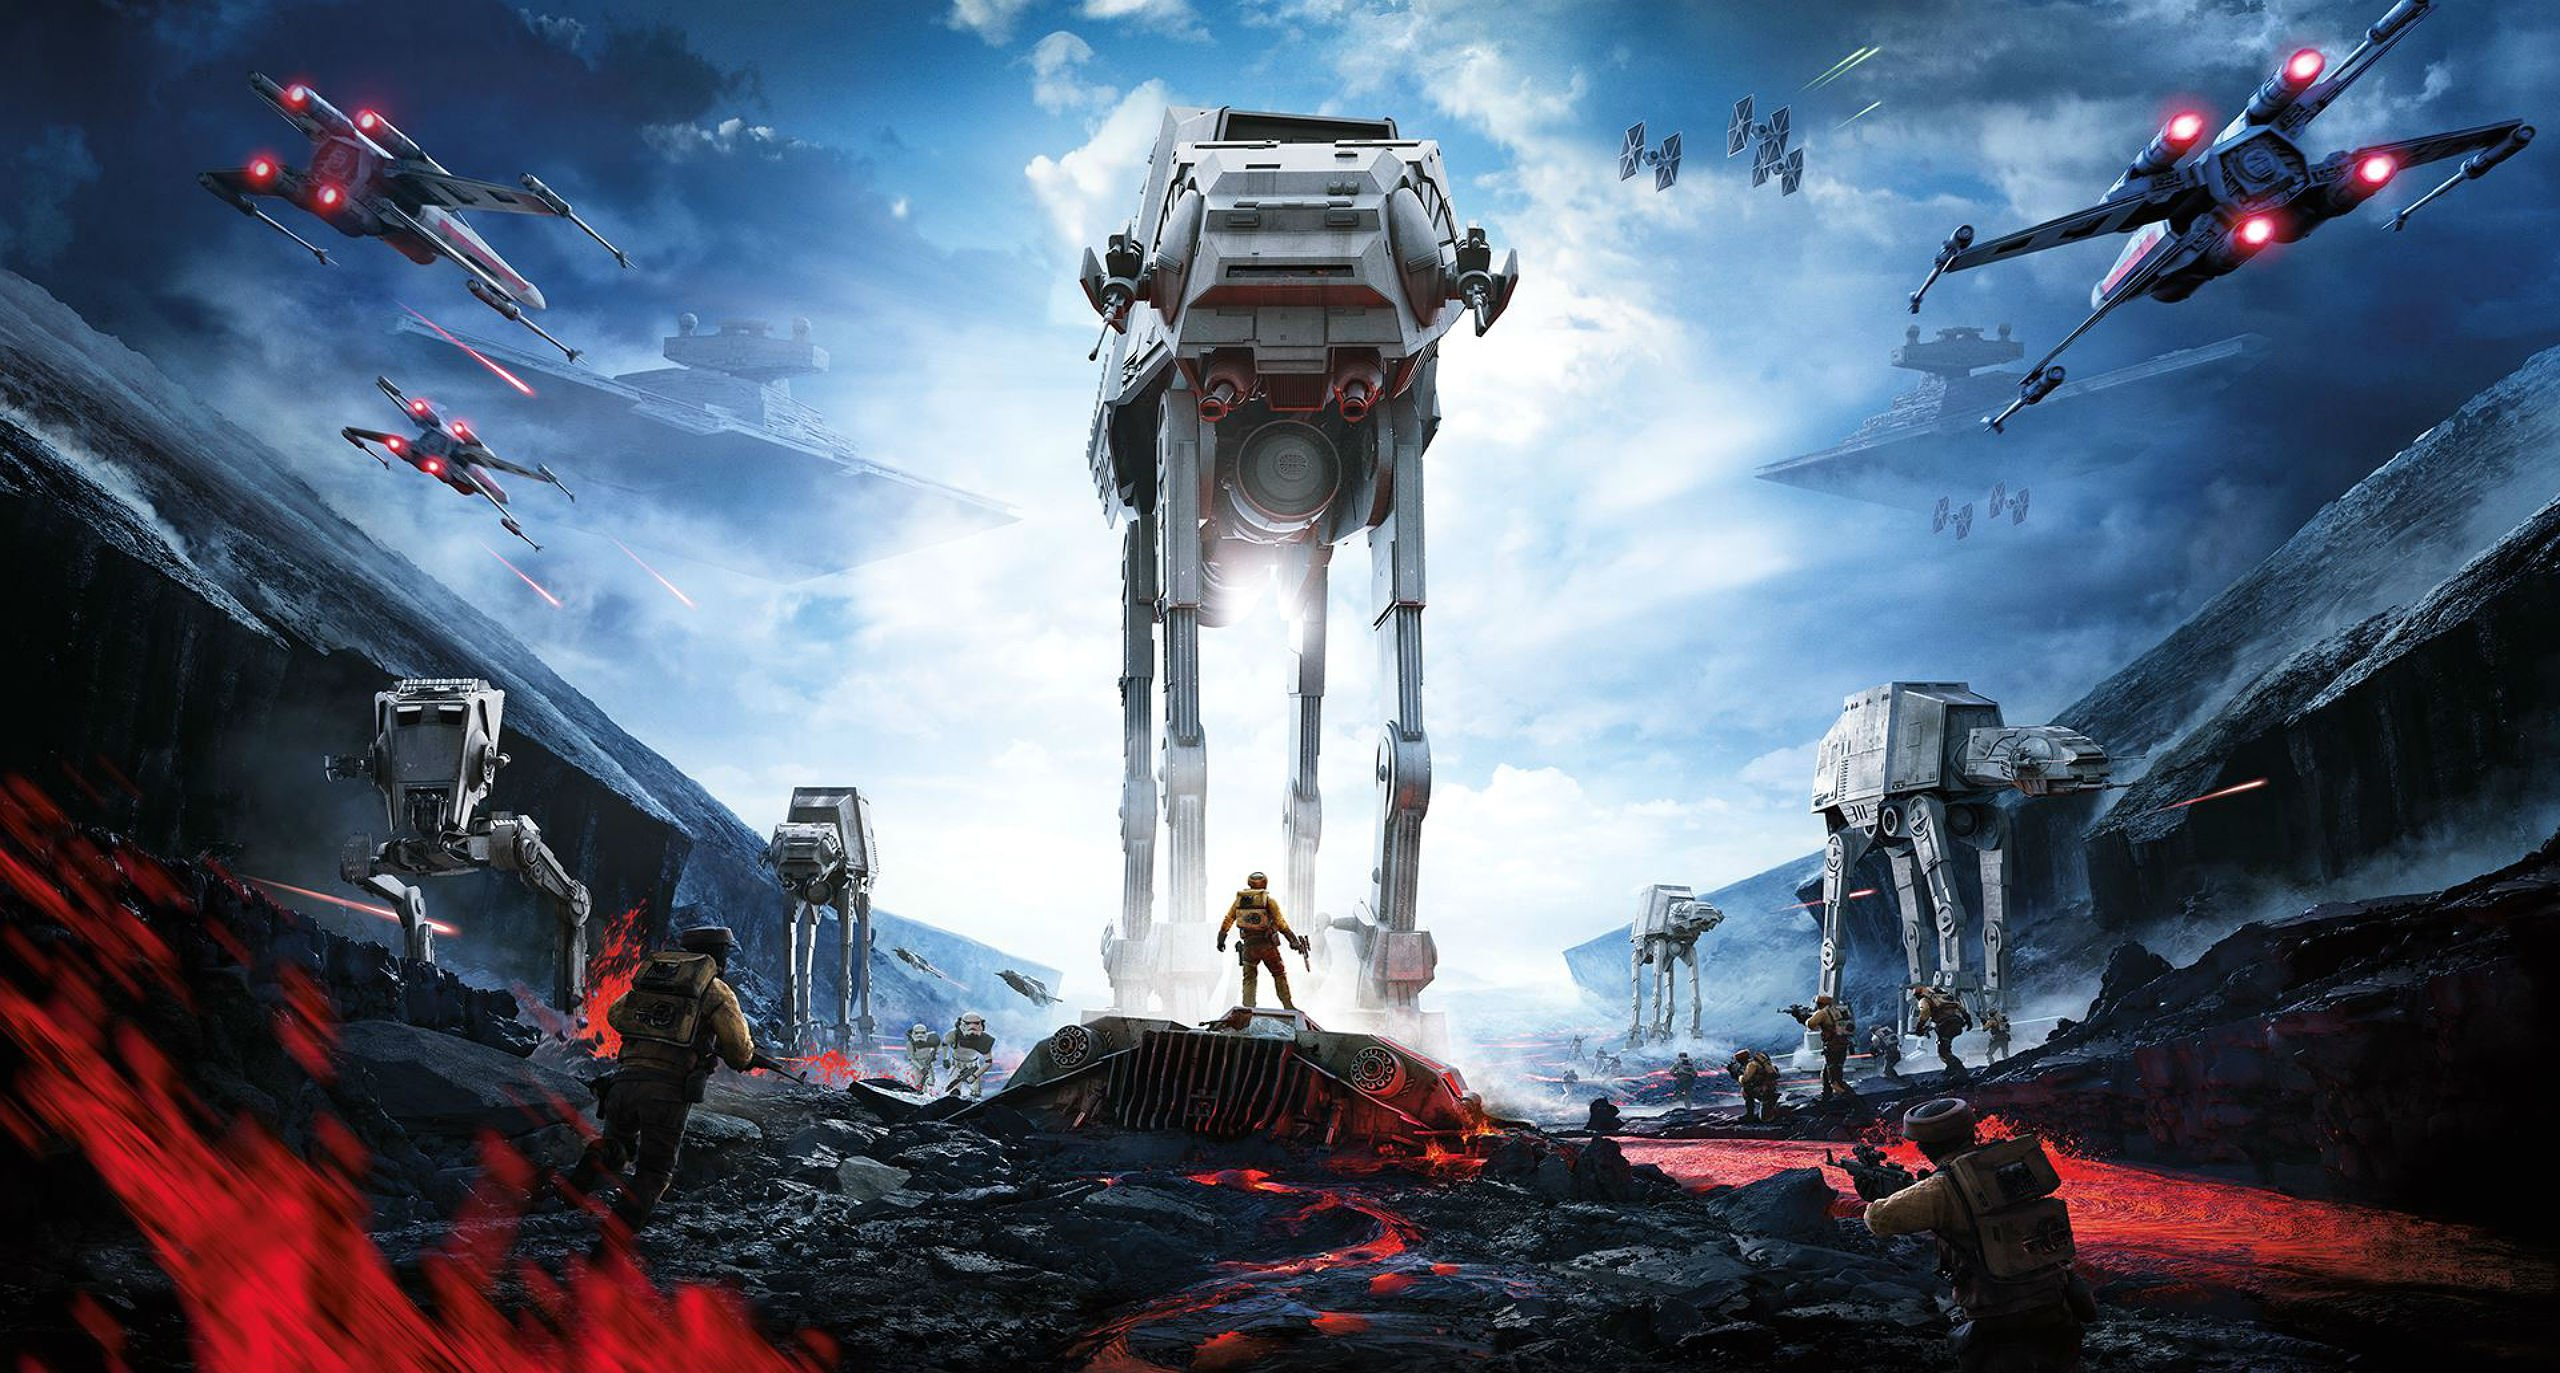 star wars battlefront backgrounds, pictures, images